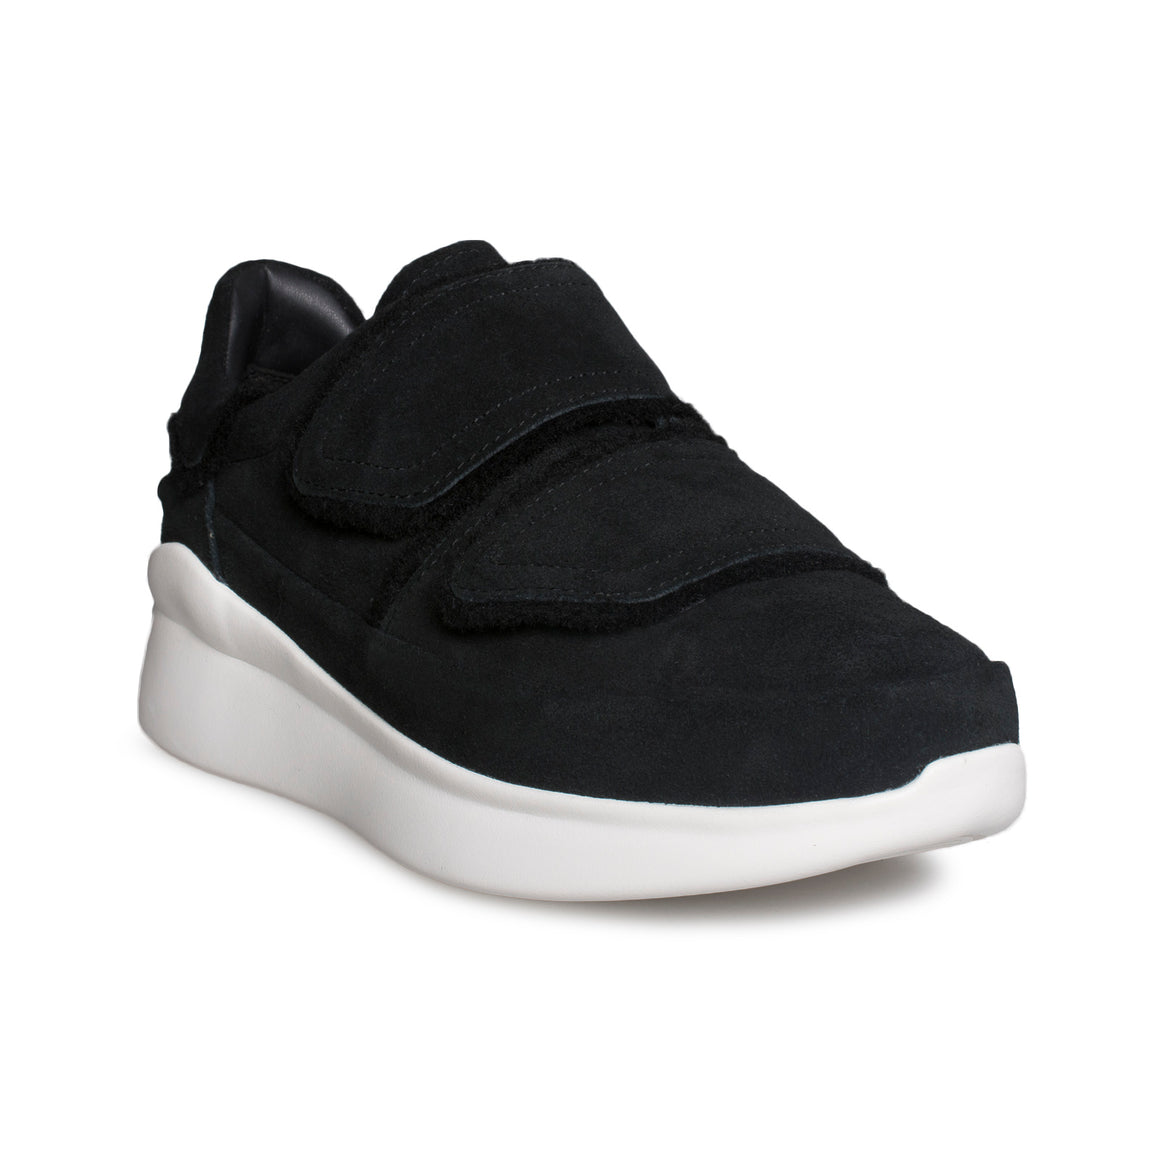 UGG Ashby Spill Seam Sneaker Black - Women's